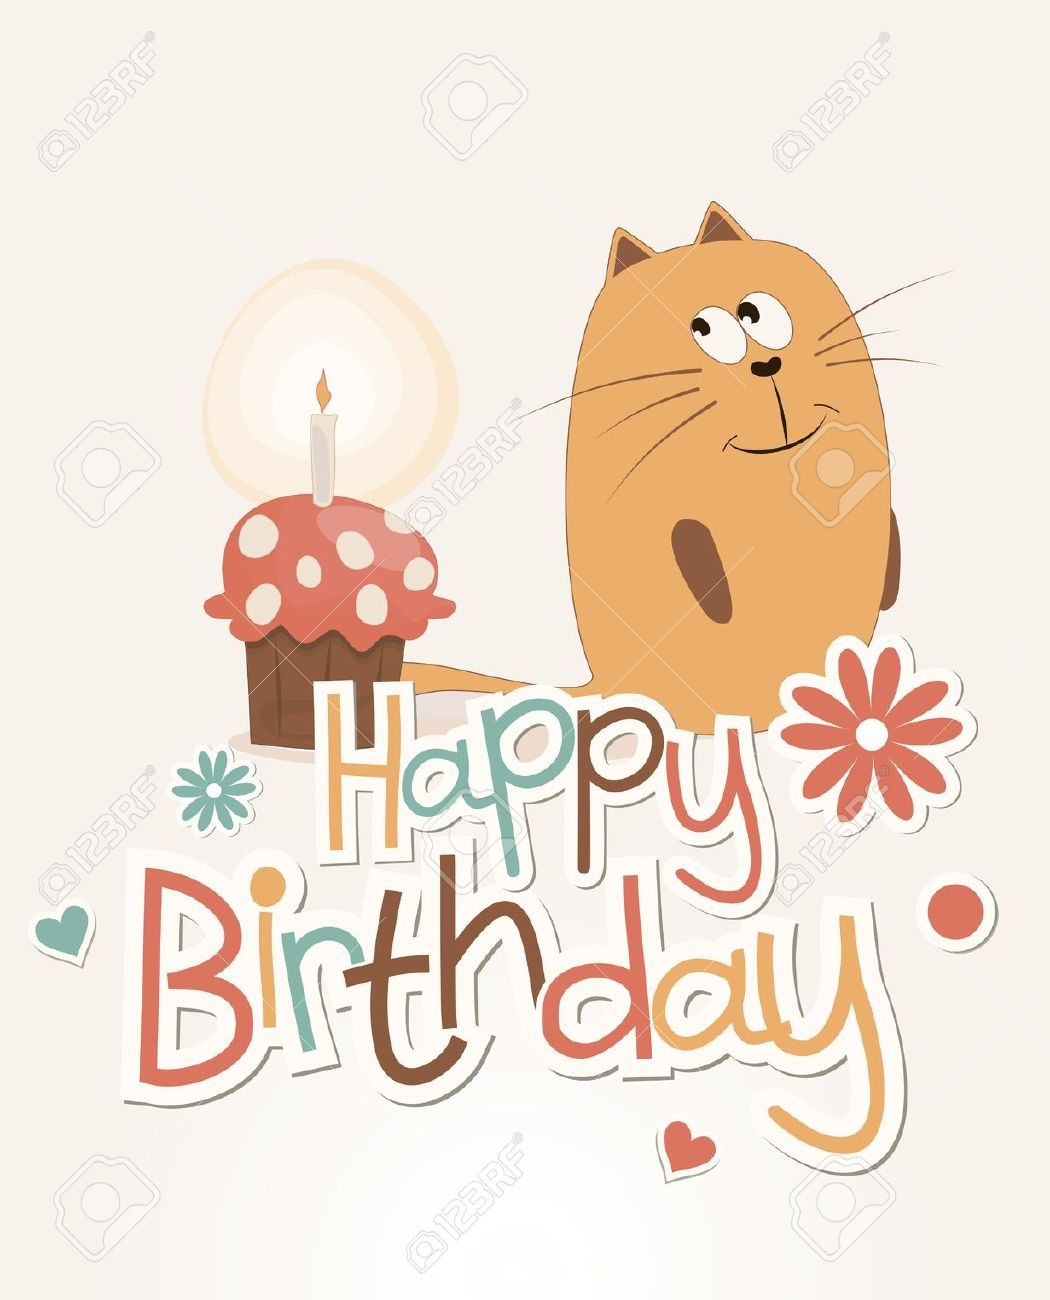 Postcard Birthday With A Sweet Cat And Cake Royalty Free Cliparts.